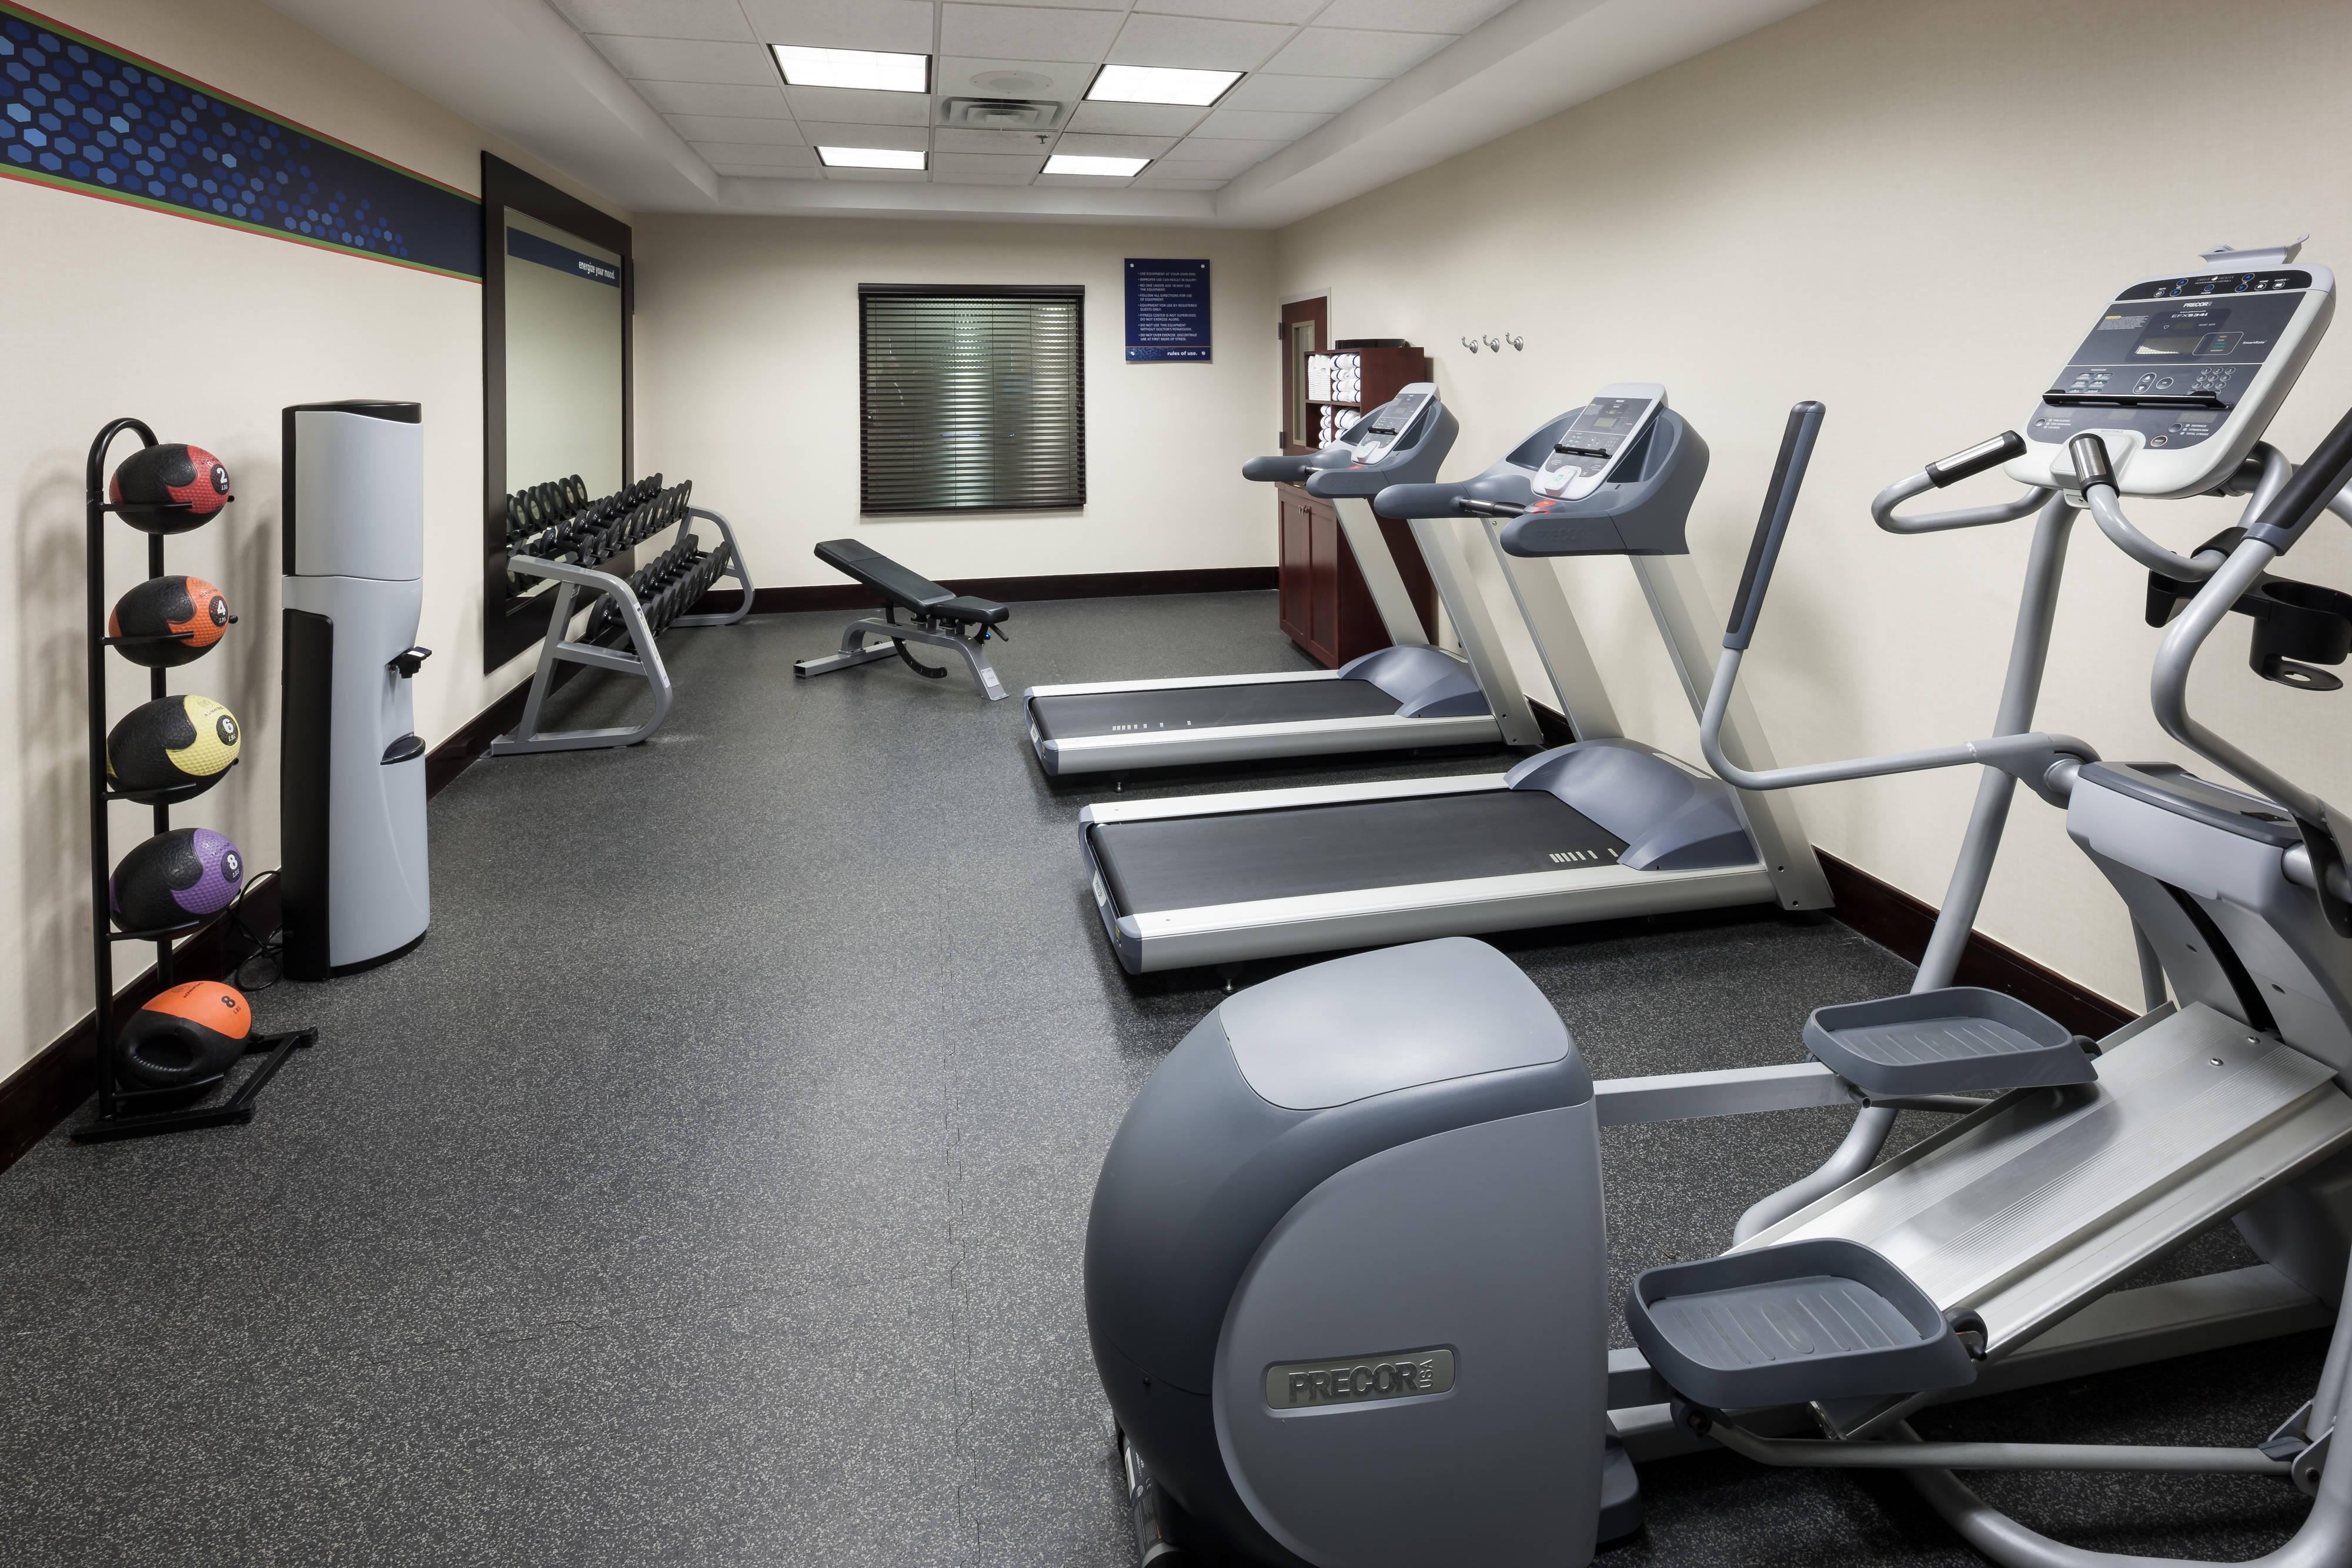 Residence Inn Lakeland cardio equipment